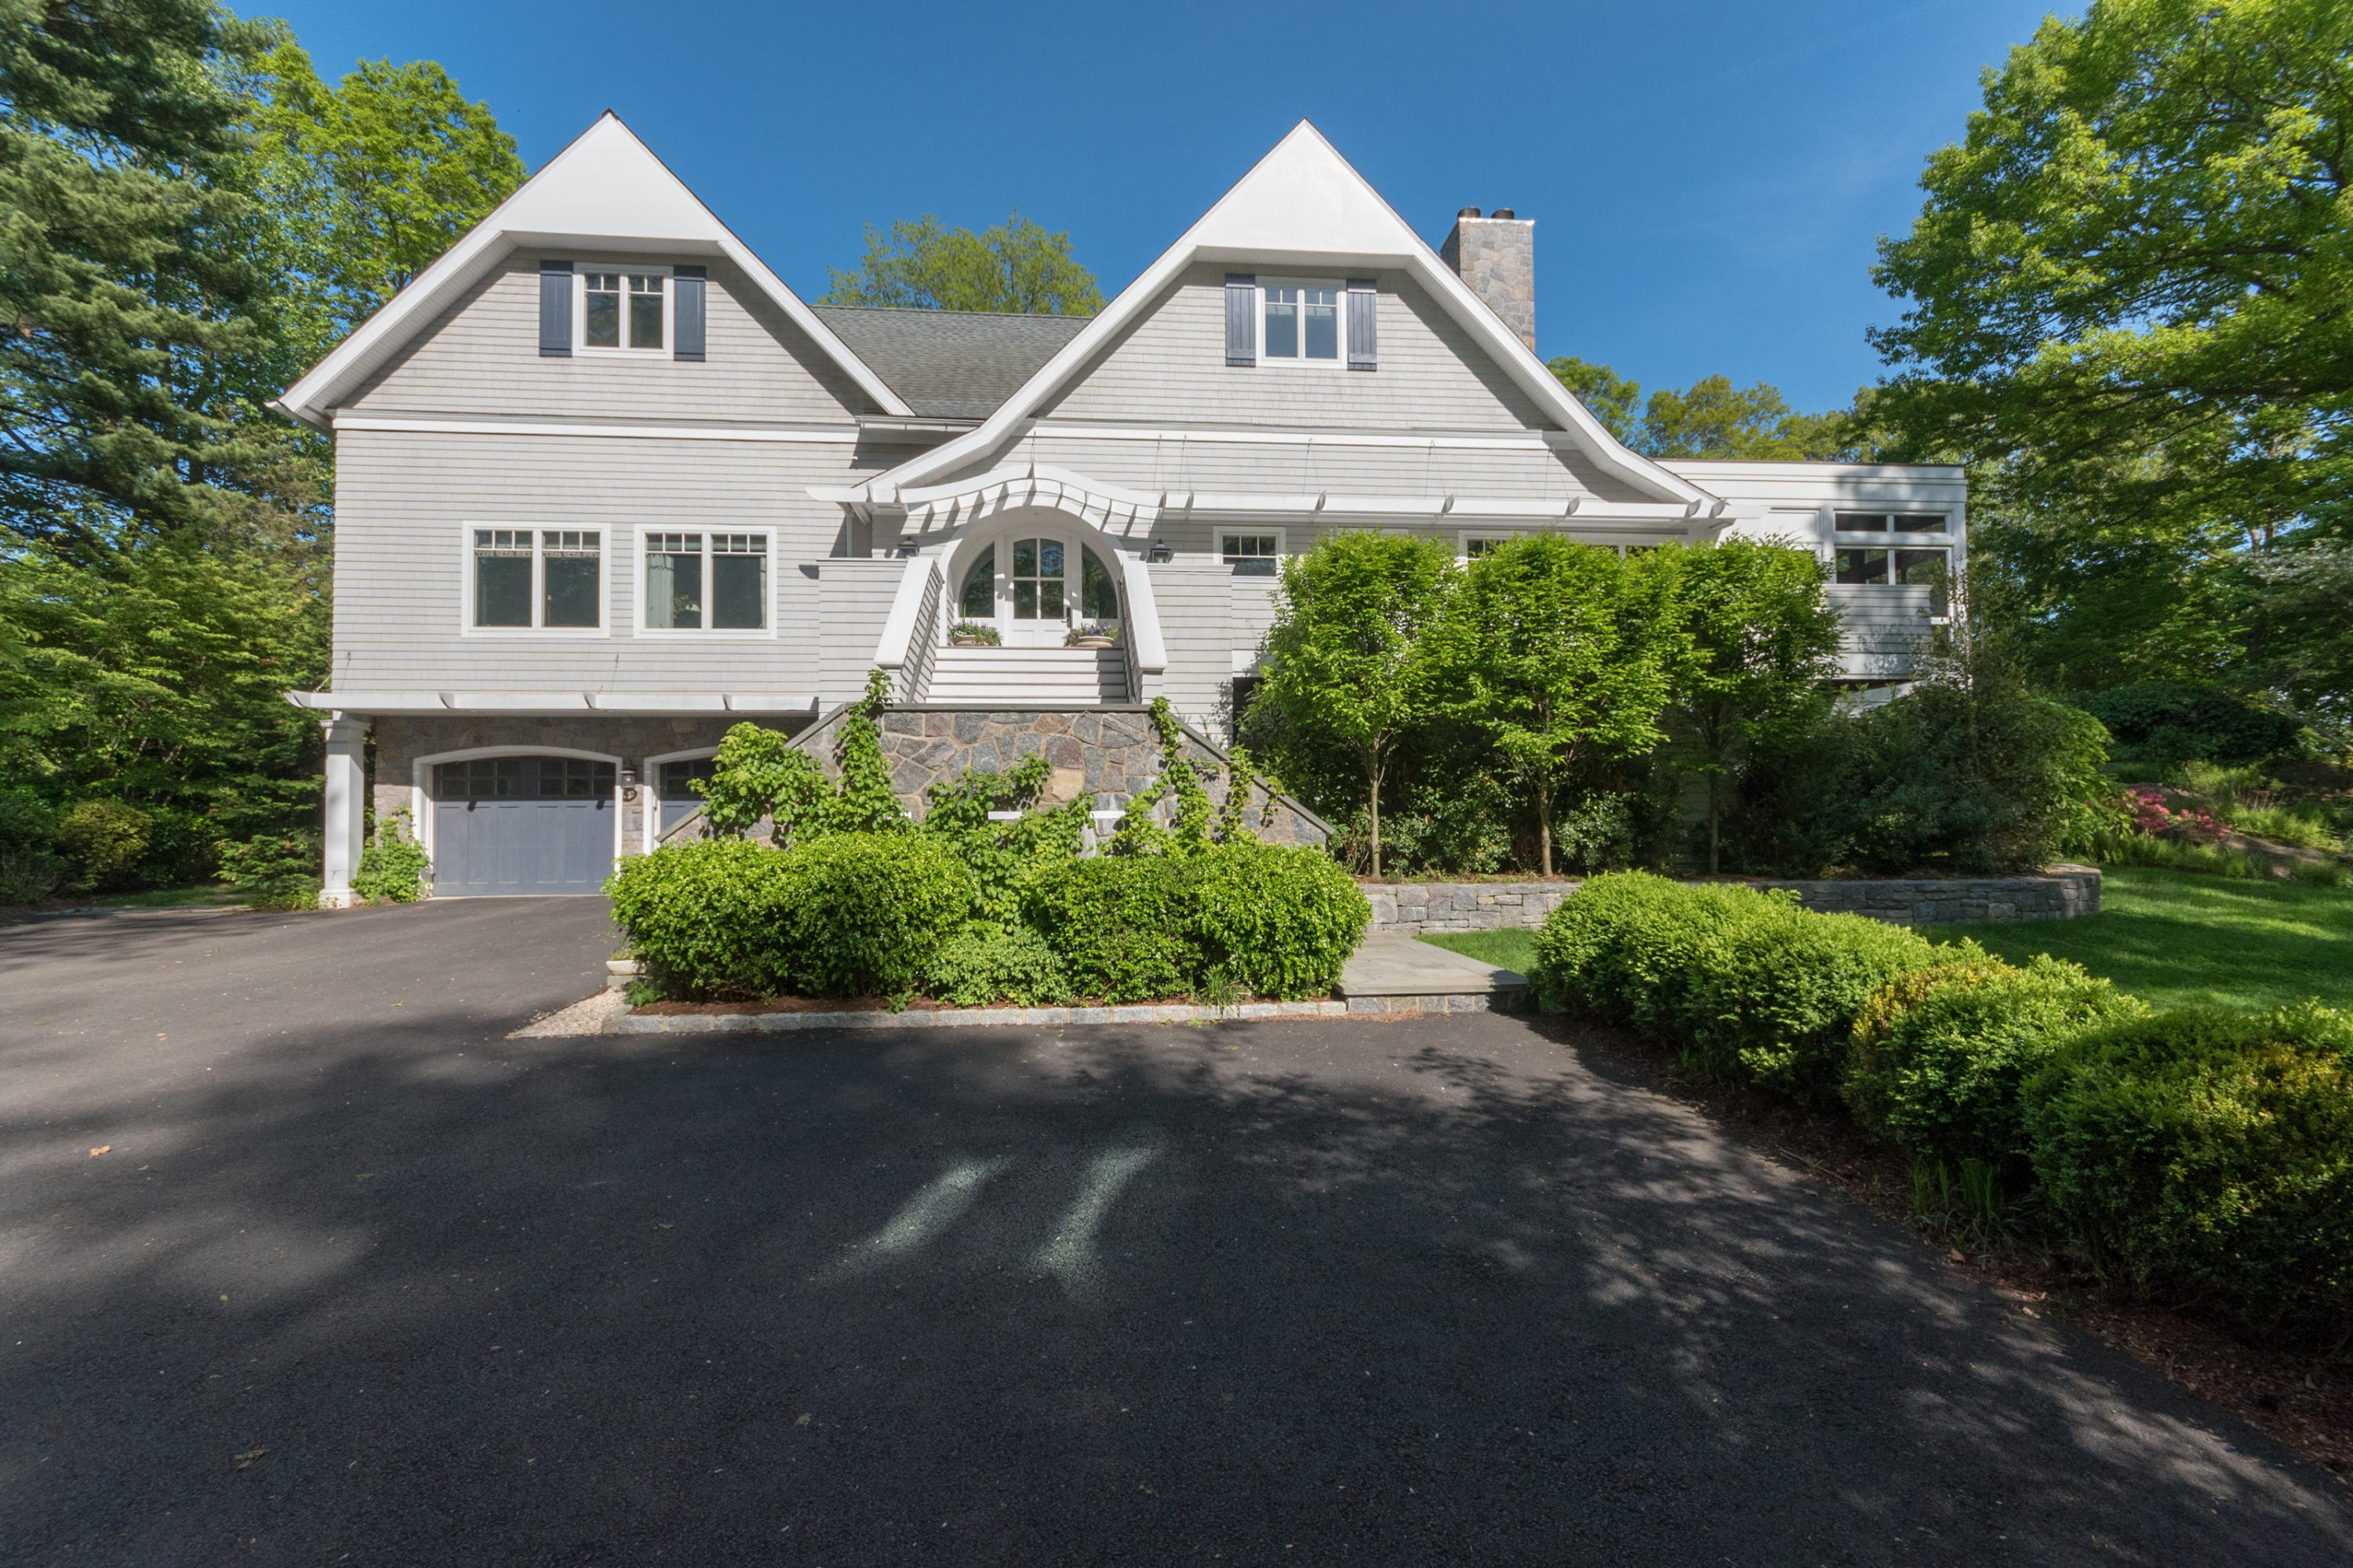 9 SEARLES ROAD, DARIEN, CT 06820